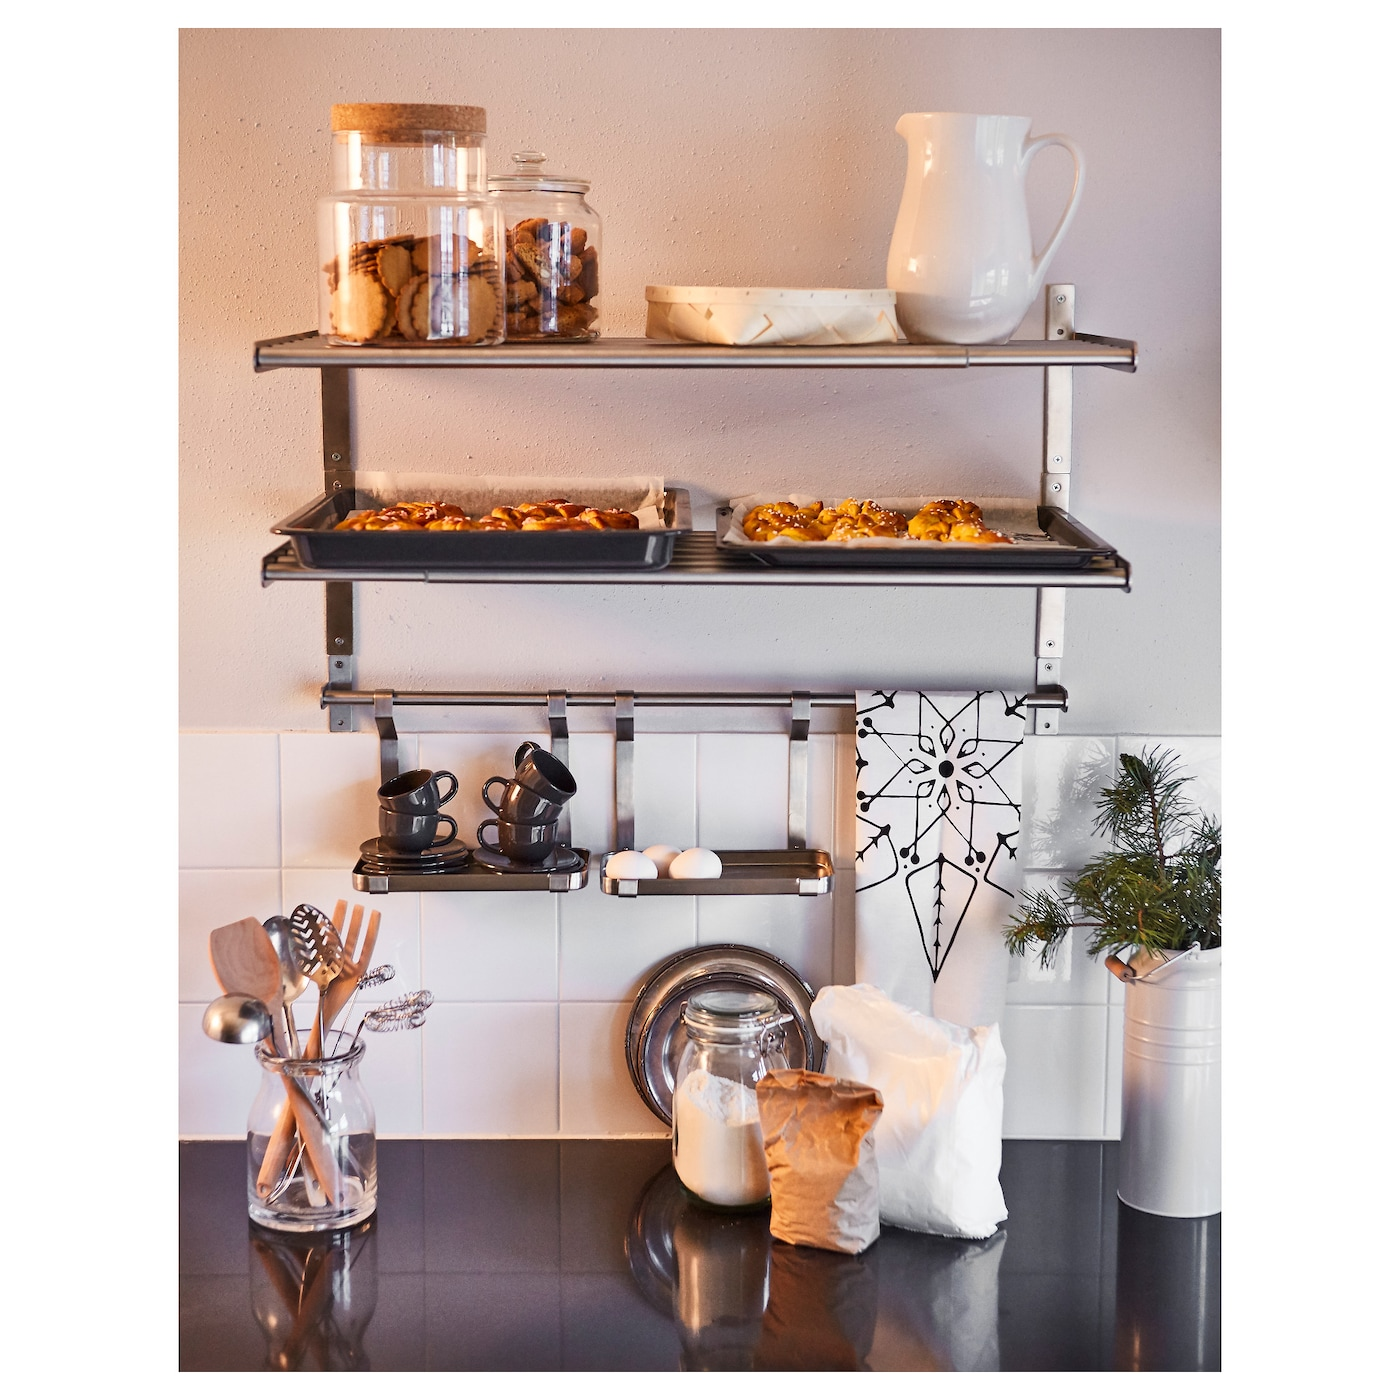 Grundtal wall shelf stainless steel 80 cm ikea for Ikea grundtal spice rack